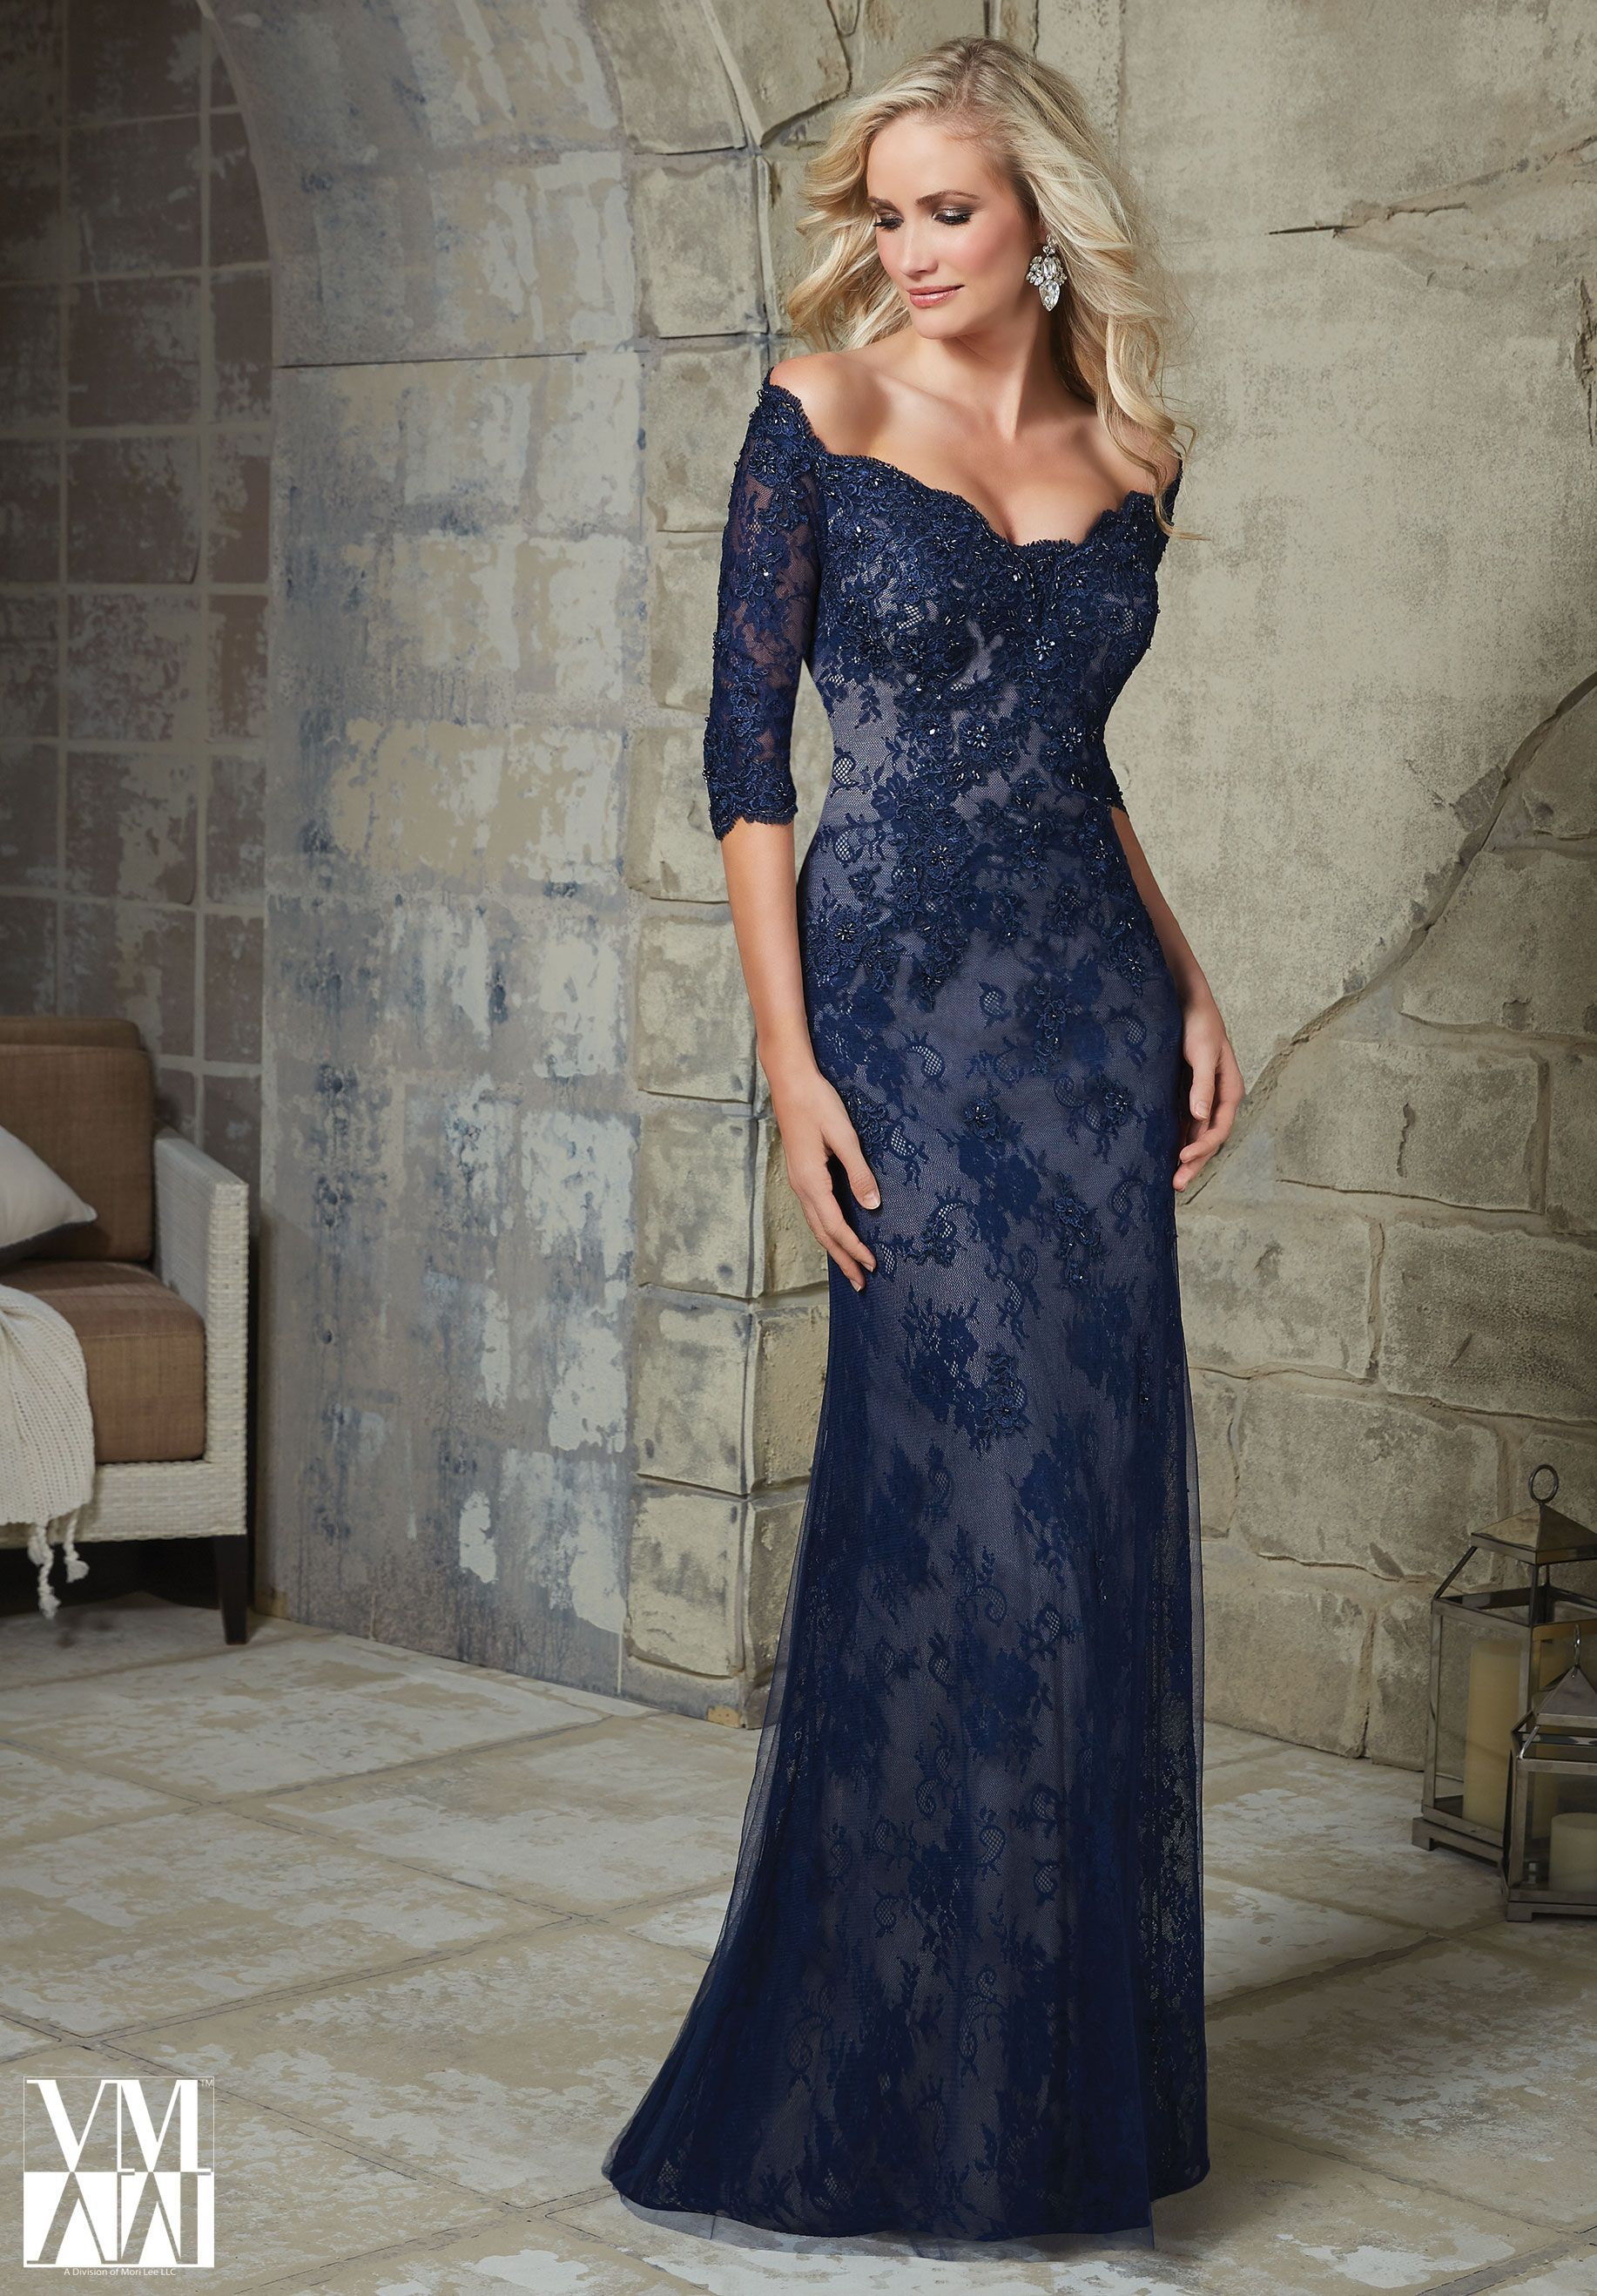 Evening gowns dresses style beaded appliques on net over